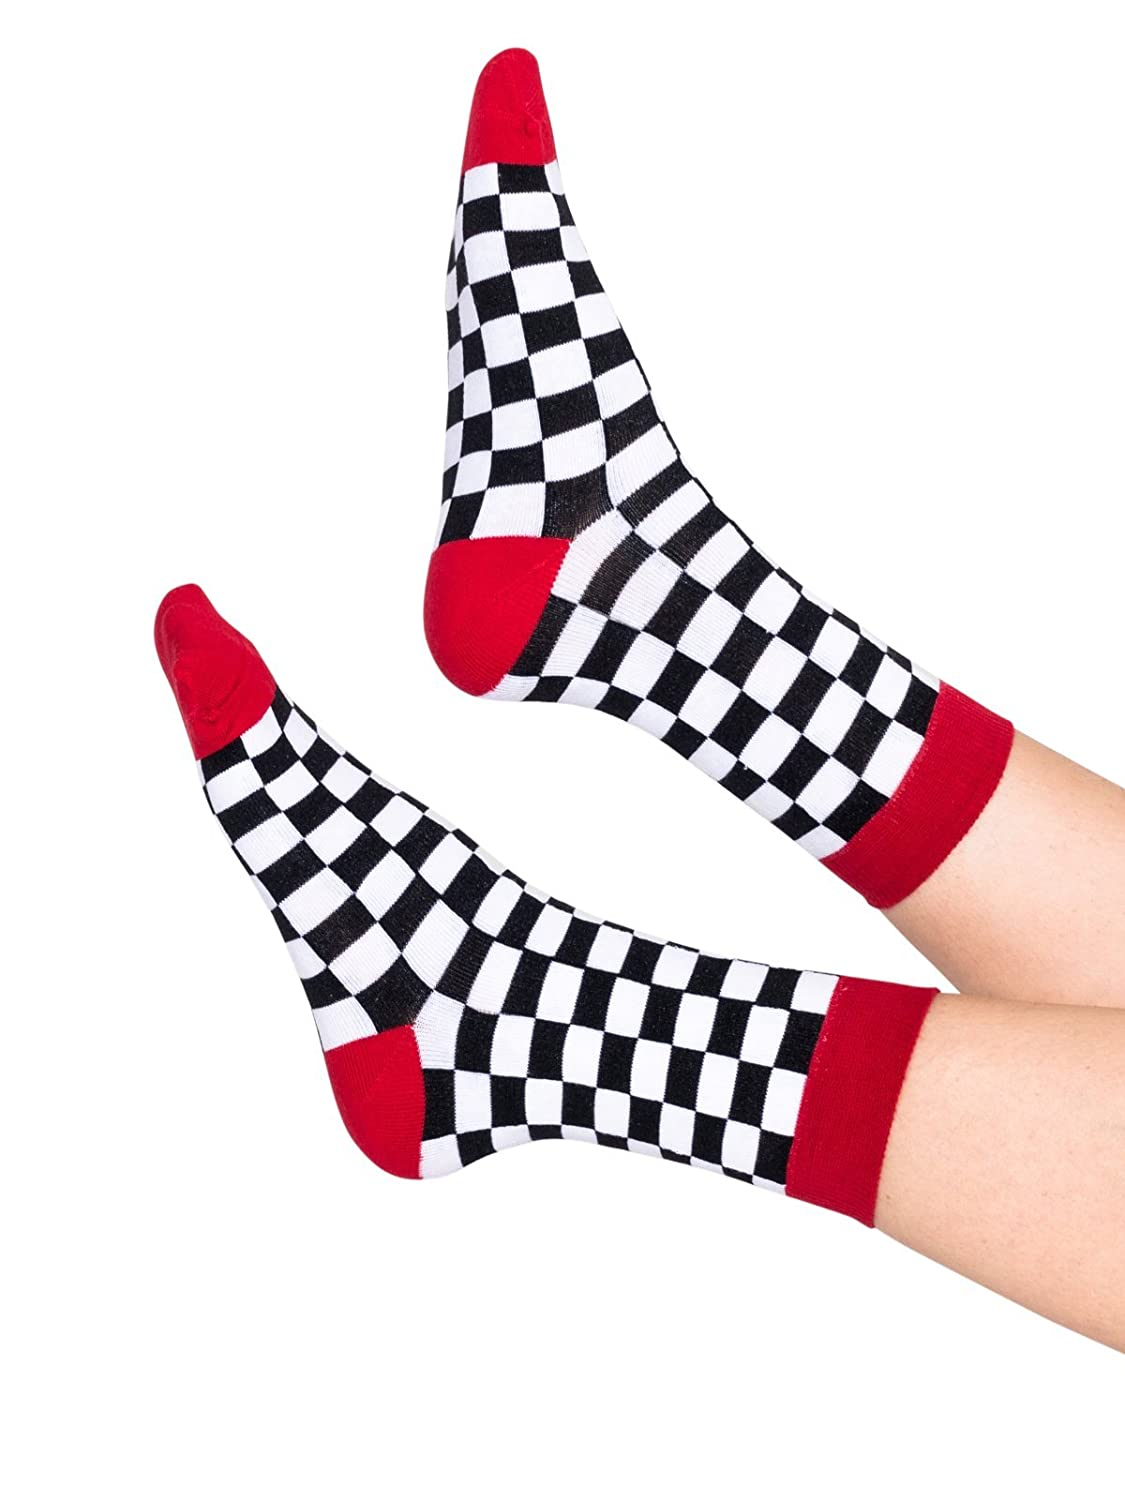 2a1a936d67cd5 Amazon.com: Red Checkered Socks Ankle Sock Tumblr Hipster ...